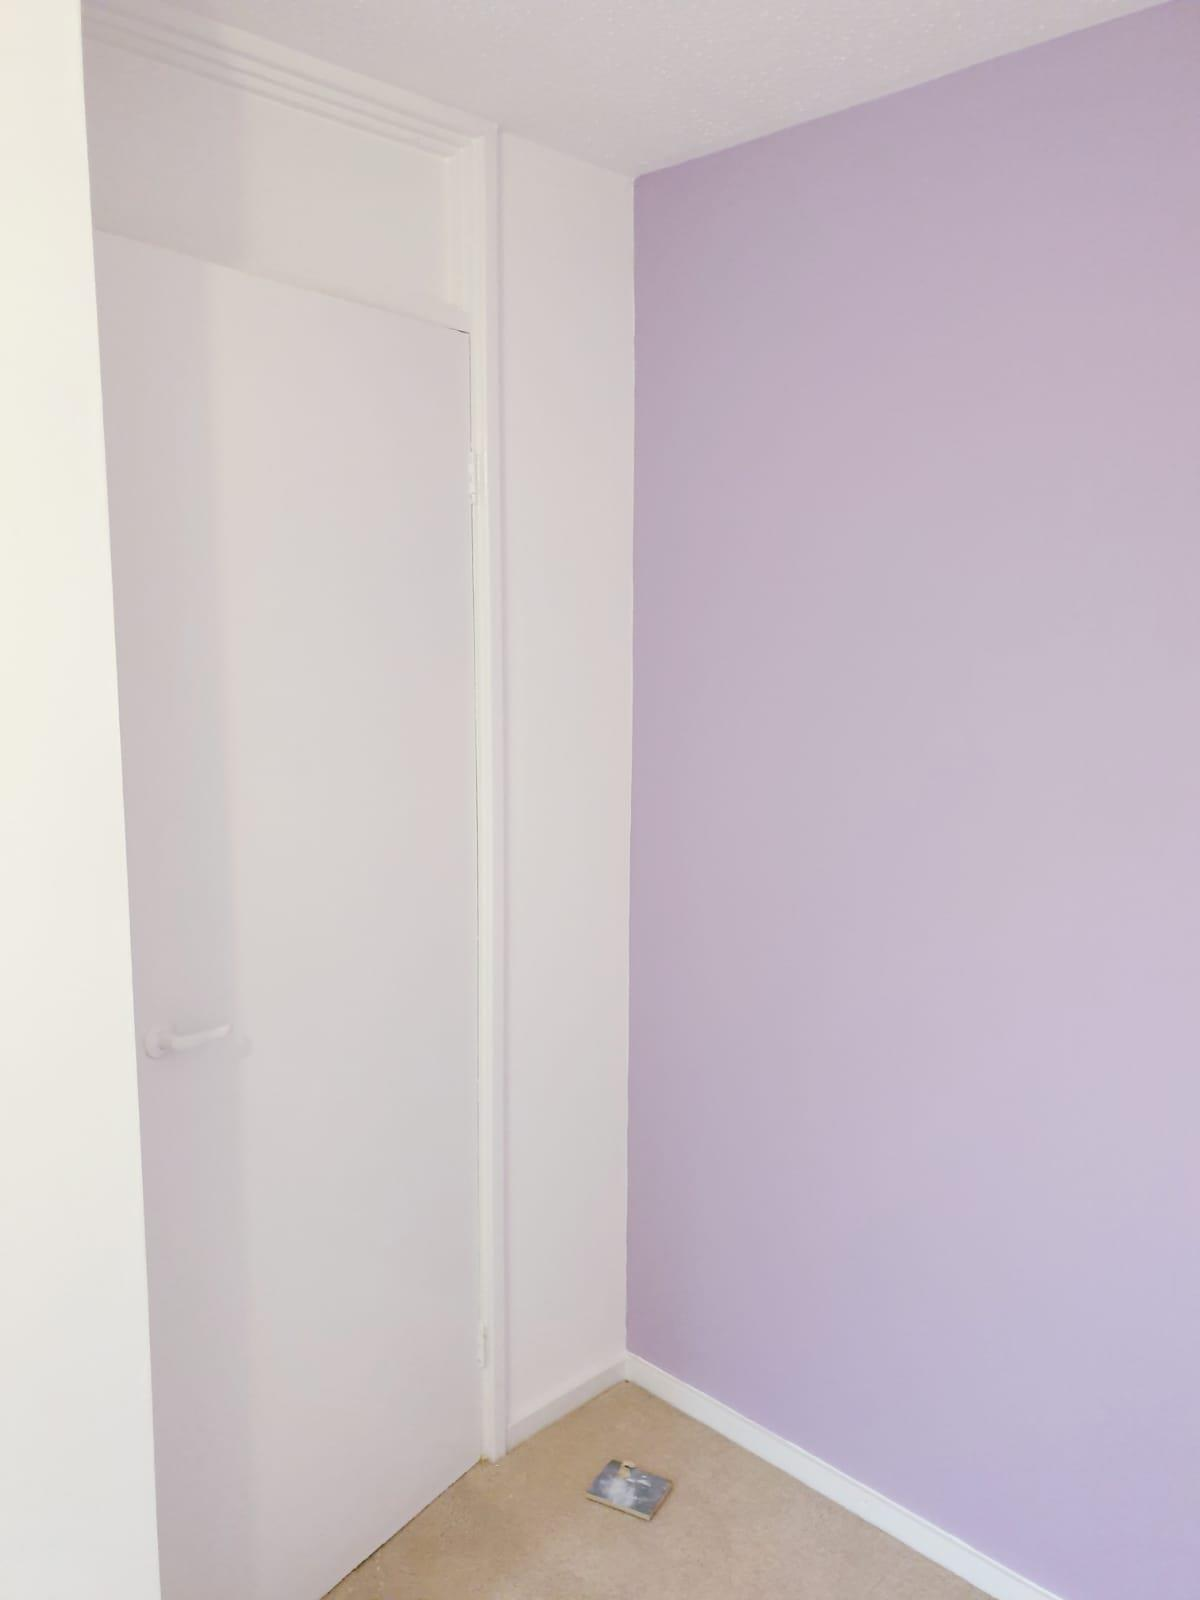 Bedroom Walls cross lined and Painted